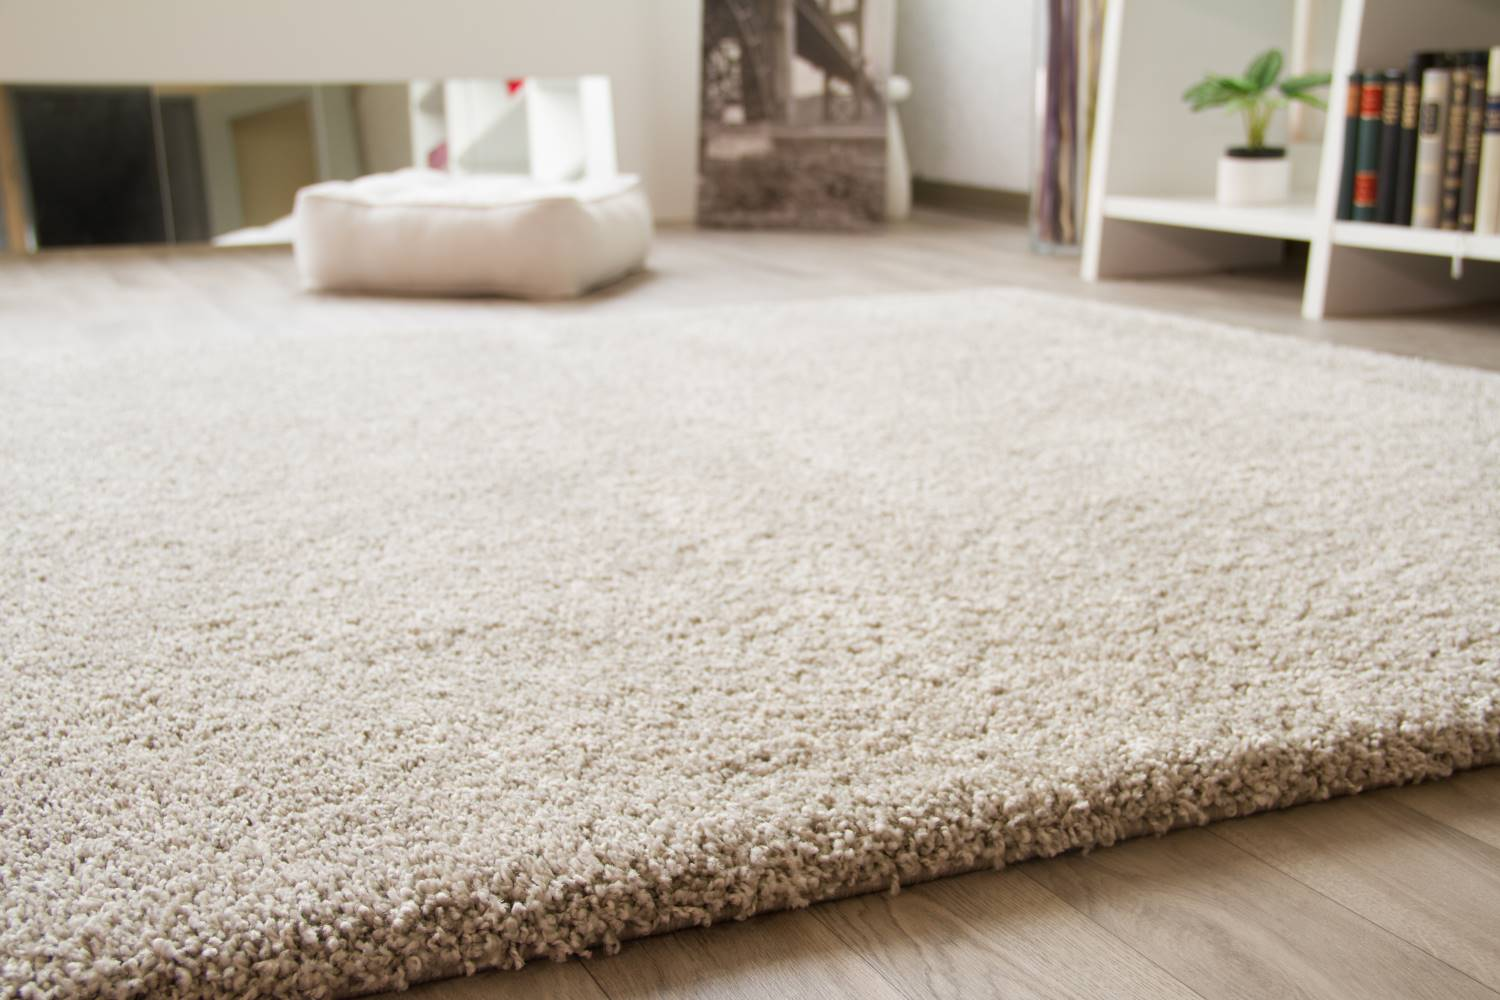 Outdoor Teppich 200x250 Hochflor Teppich Chamonix Global Carpet